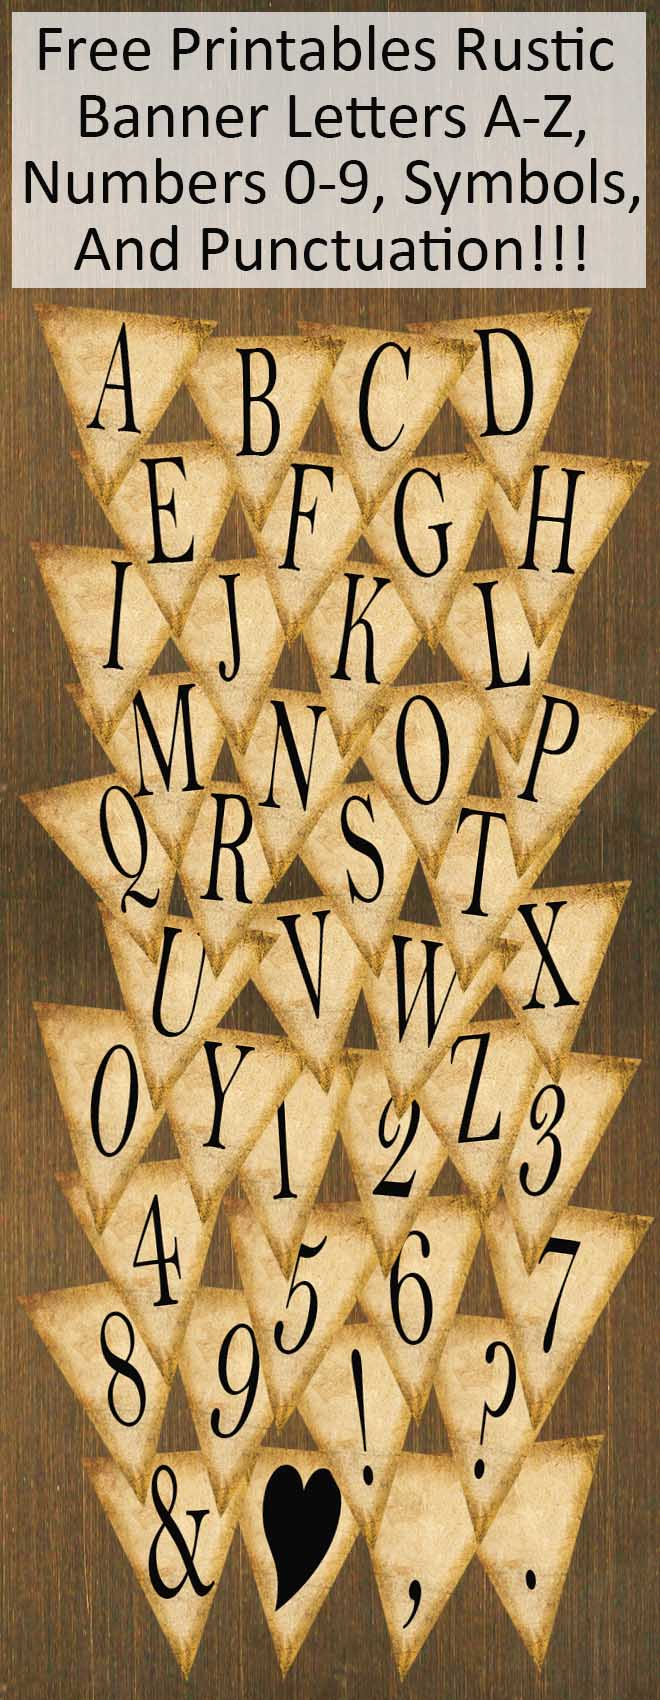 Free Printables Rustic Banner Letters A-Z, Numbers 0-9, Punctuation & Symbols